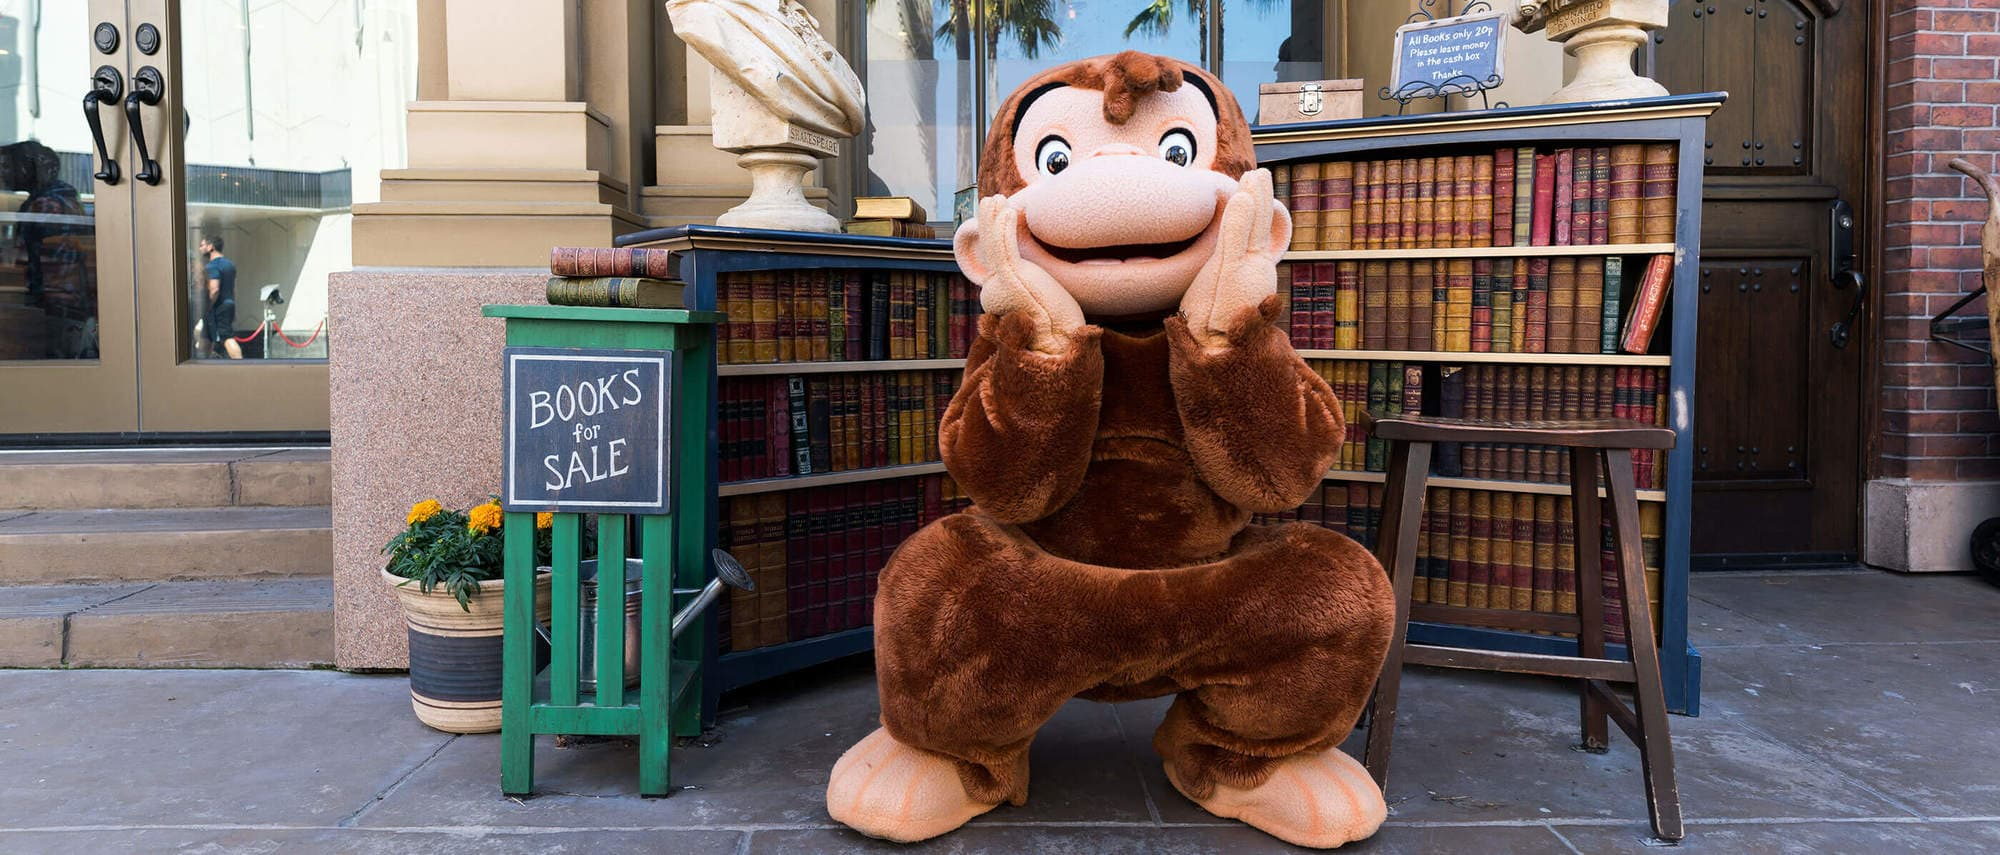 Meet beloved characters like Curious George at Universal Studios Hollywood with kids